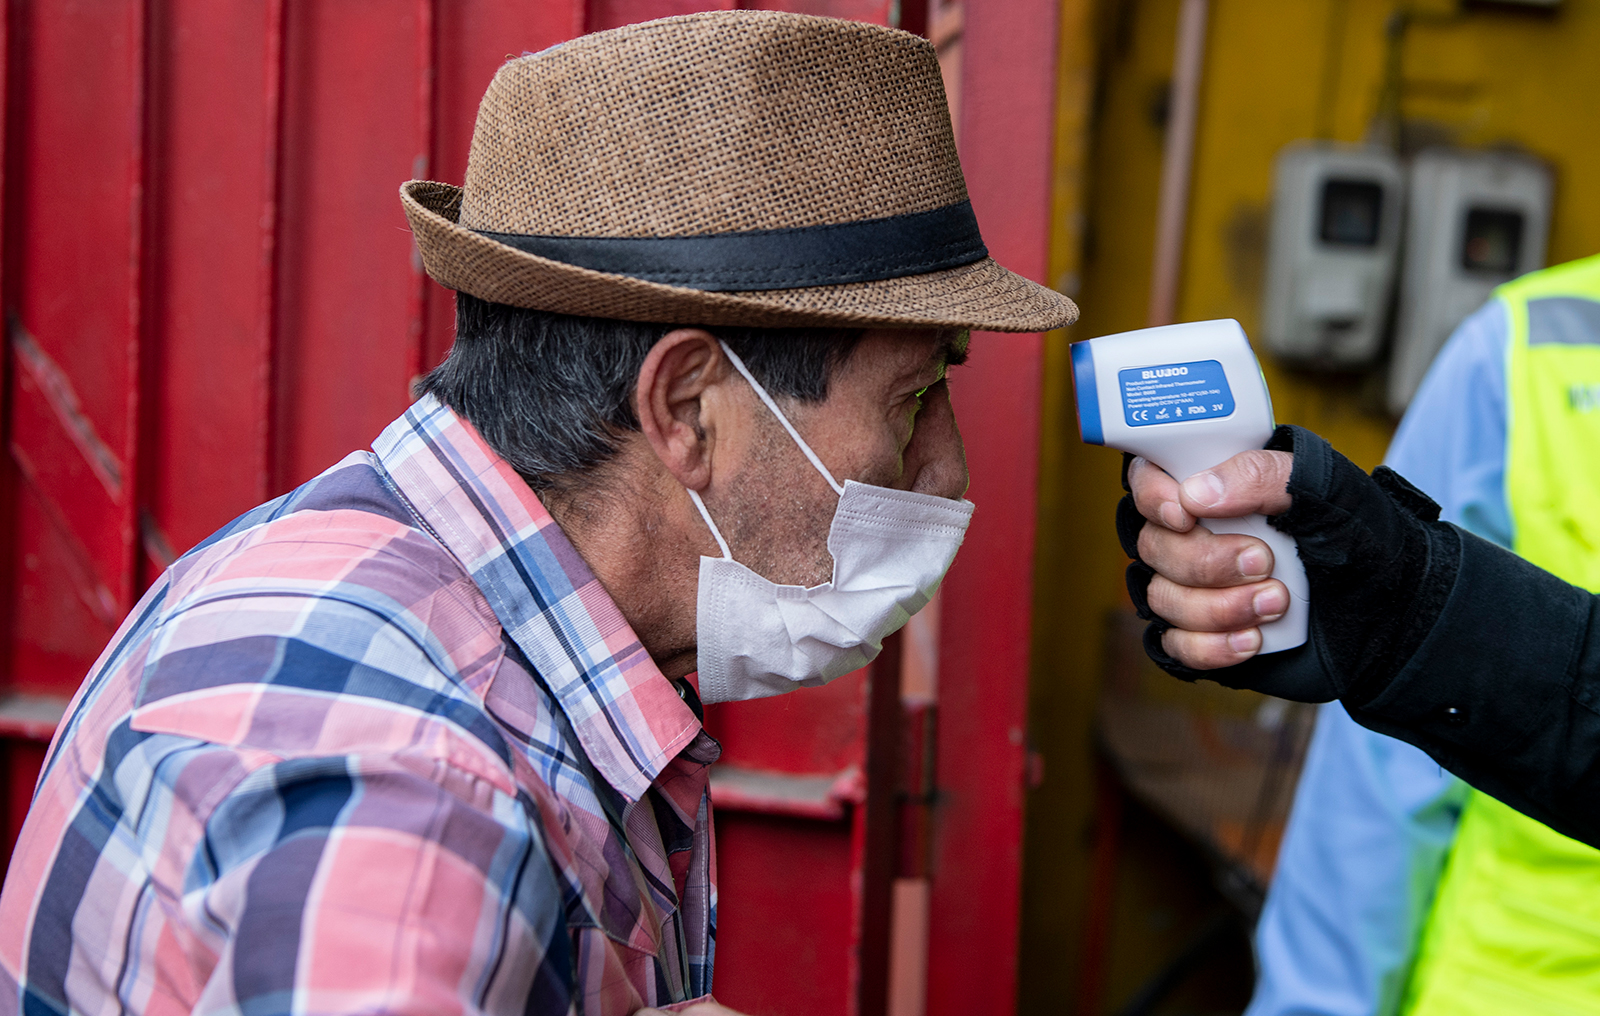 A security guard checks the bodytemperature of a man wearing a face mask in Santiago, on Wednesday, May 6.